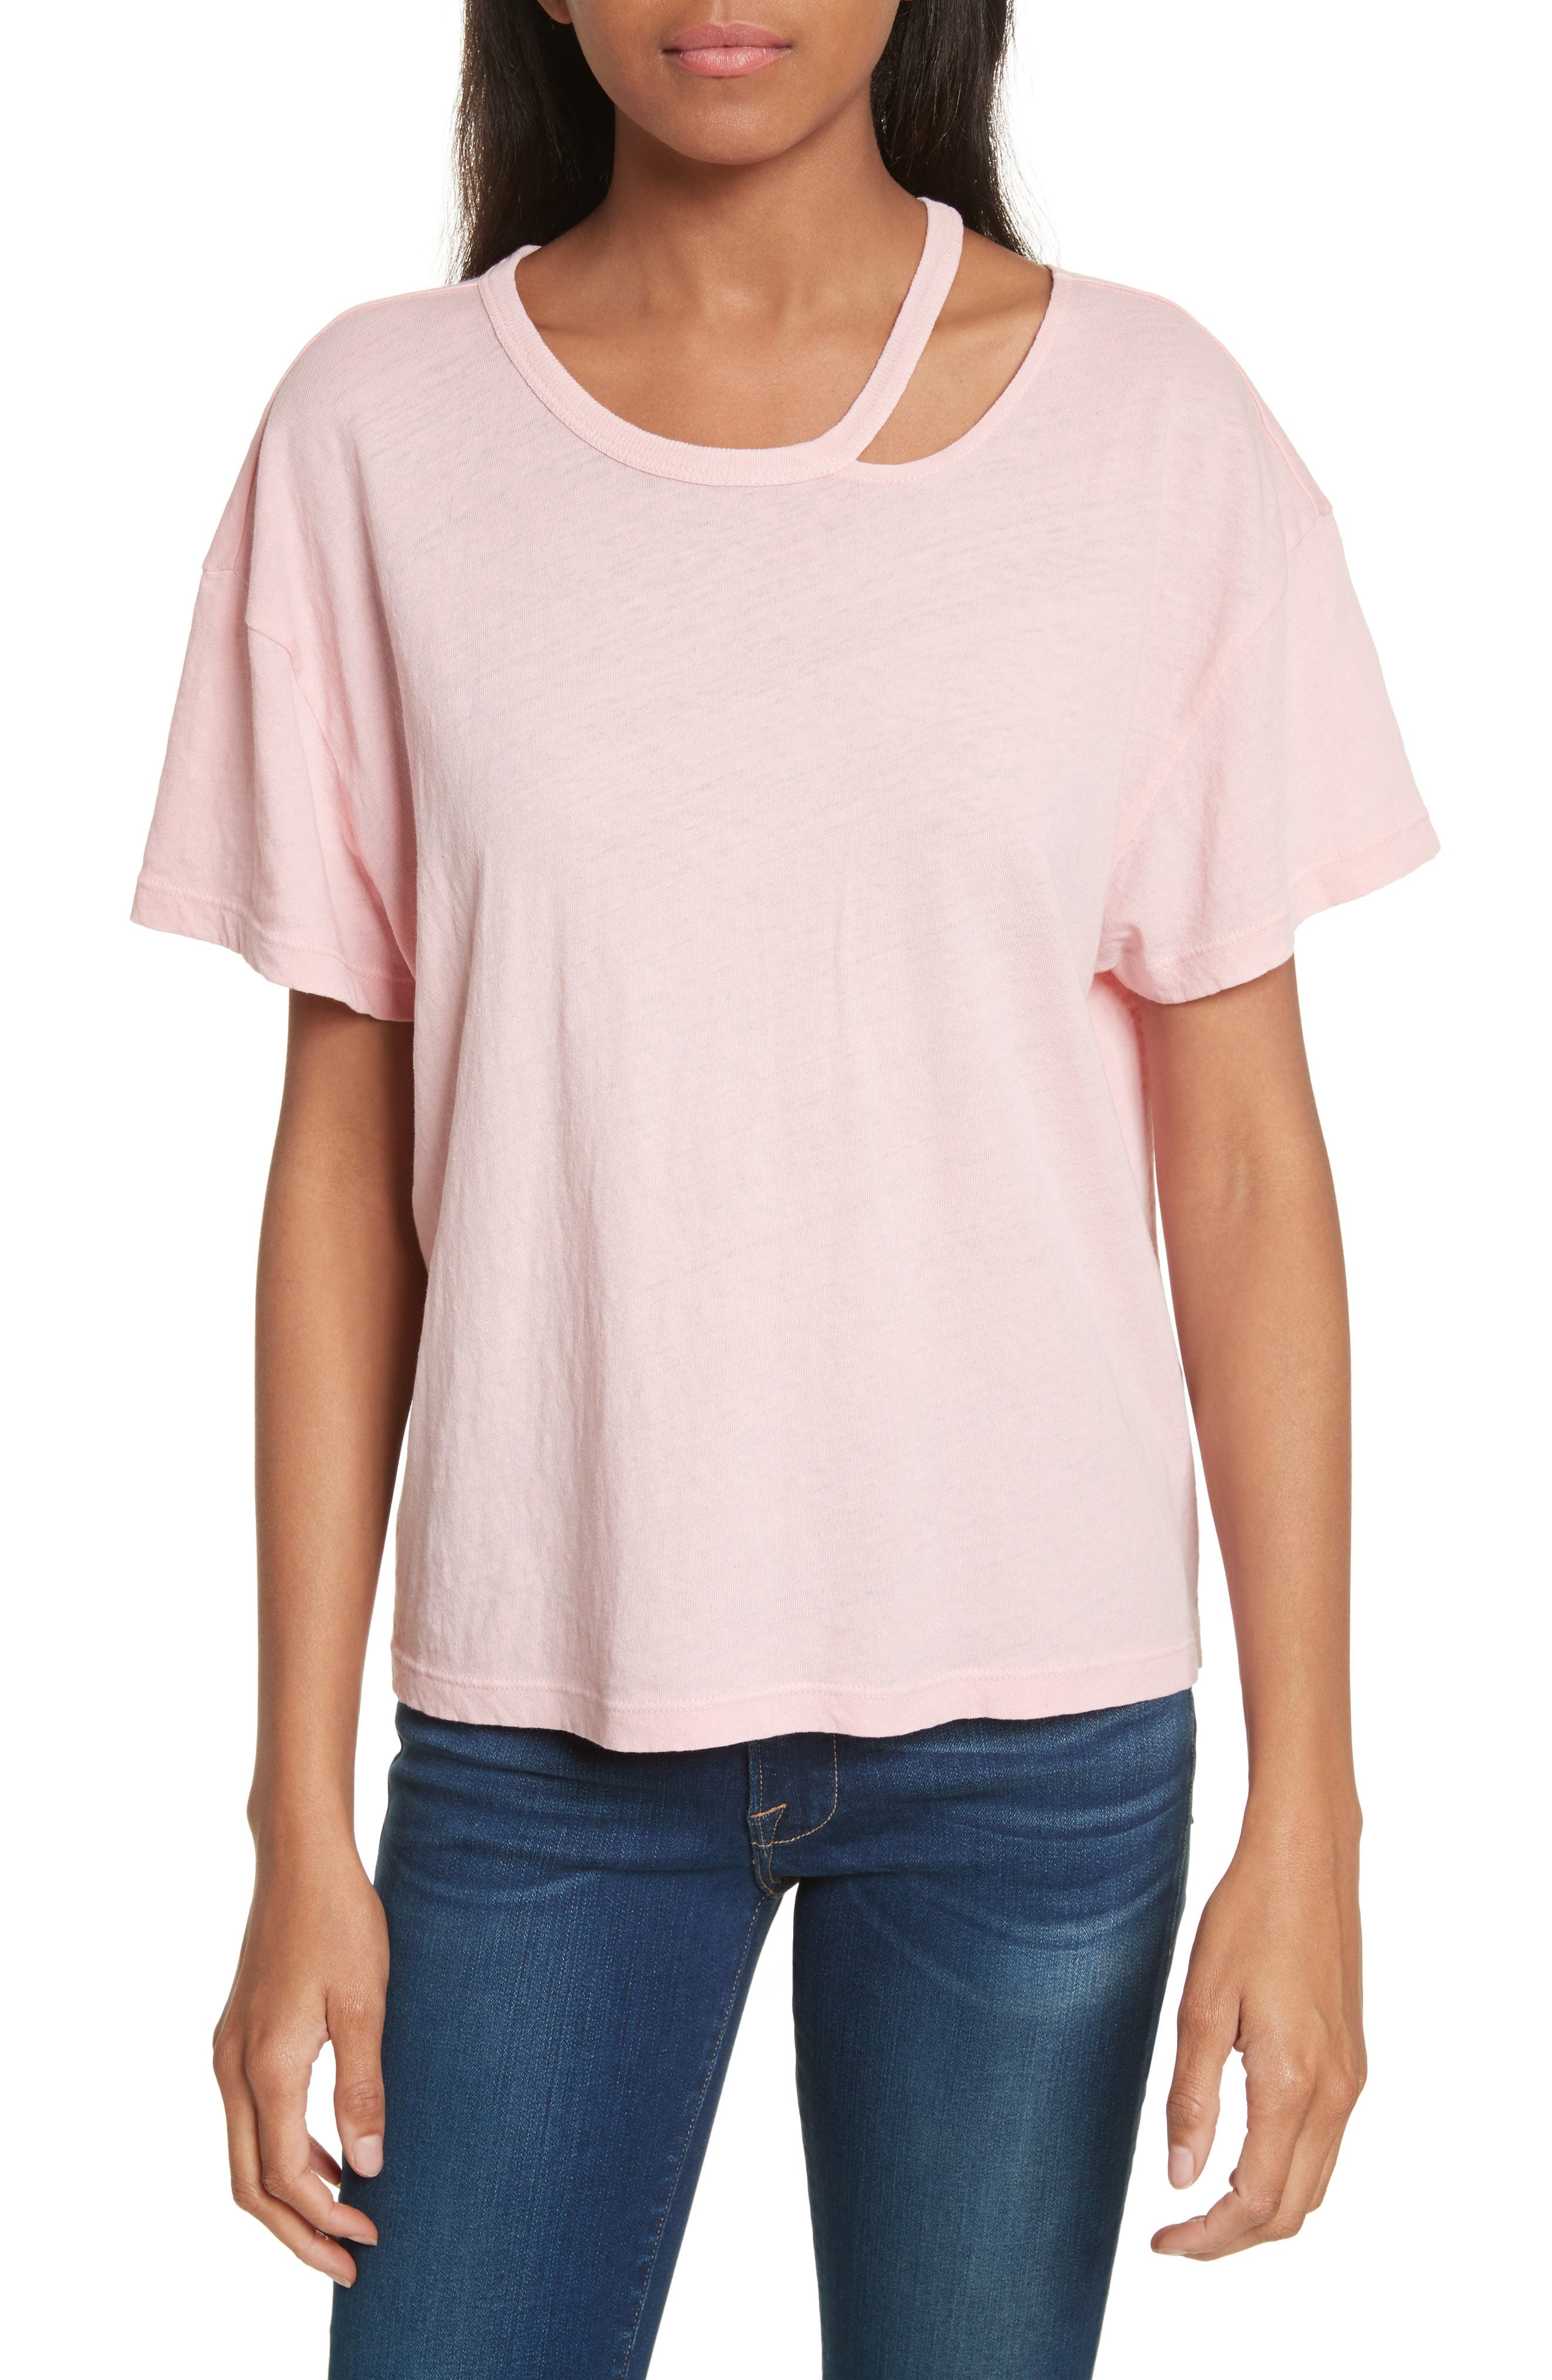 Chopped Crew Tee,                             Main thumbnail 1, color,                             Faded Light Pink Exclusive